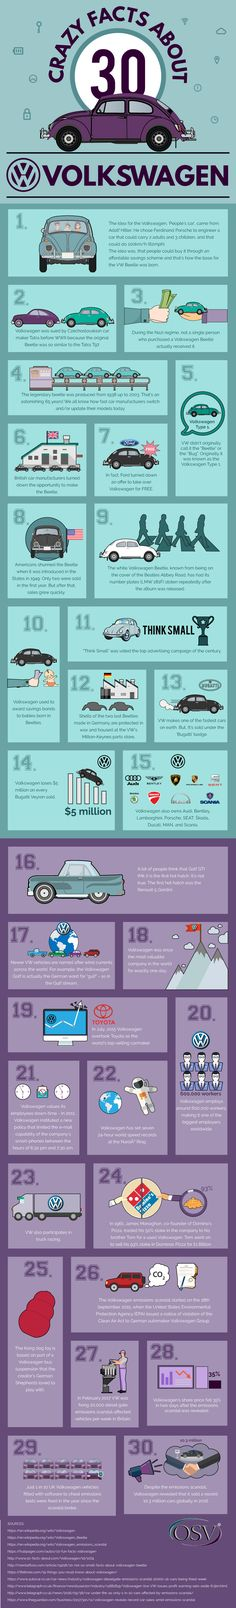 Did You Know These Shocking Facts About Volkswagen - Infographic